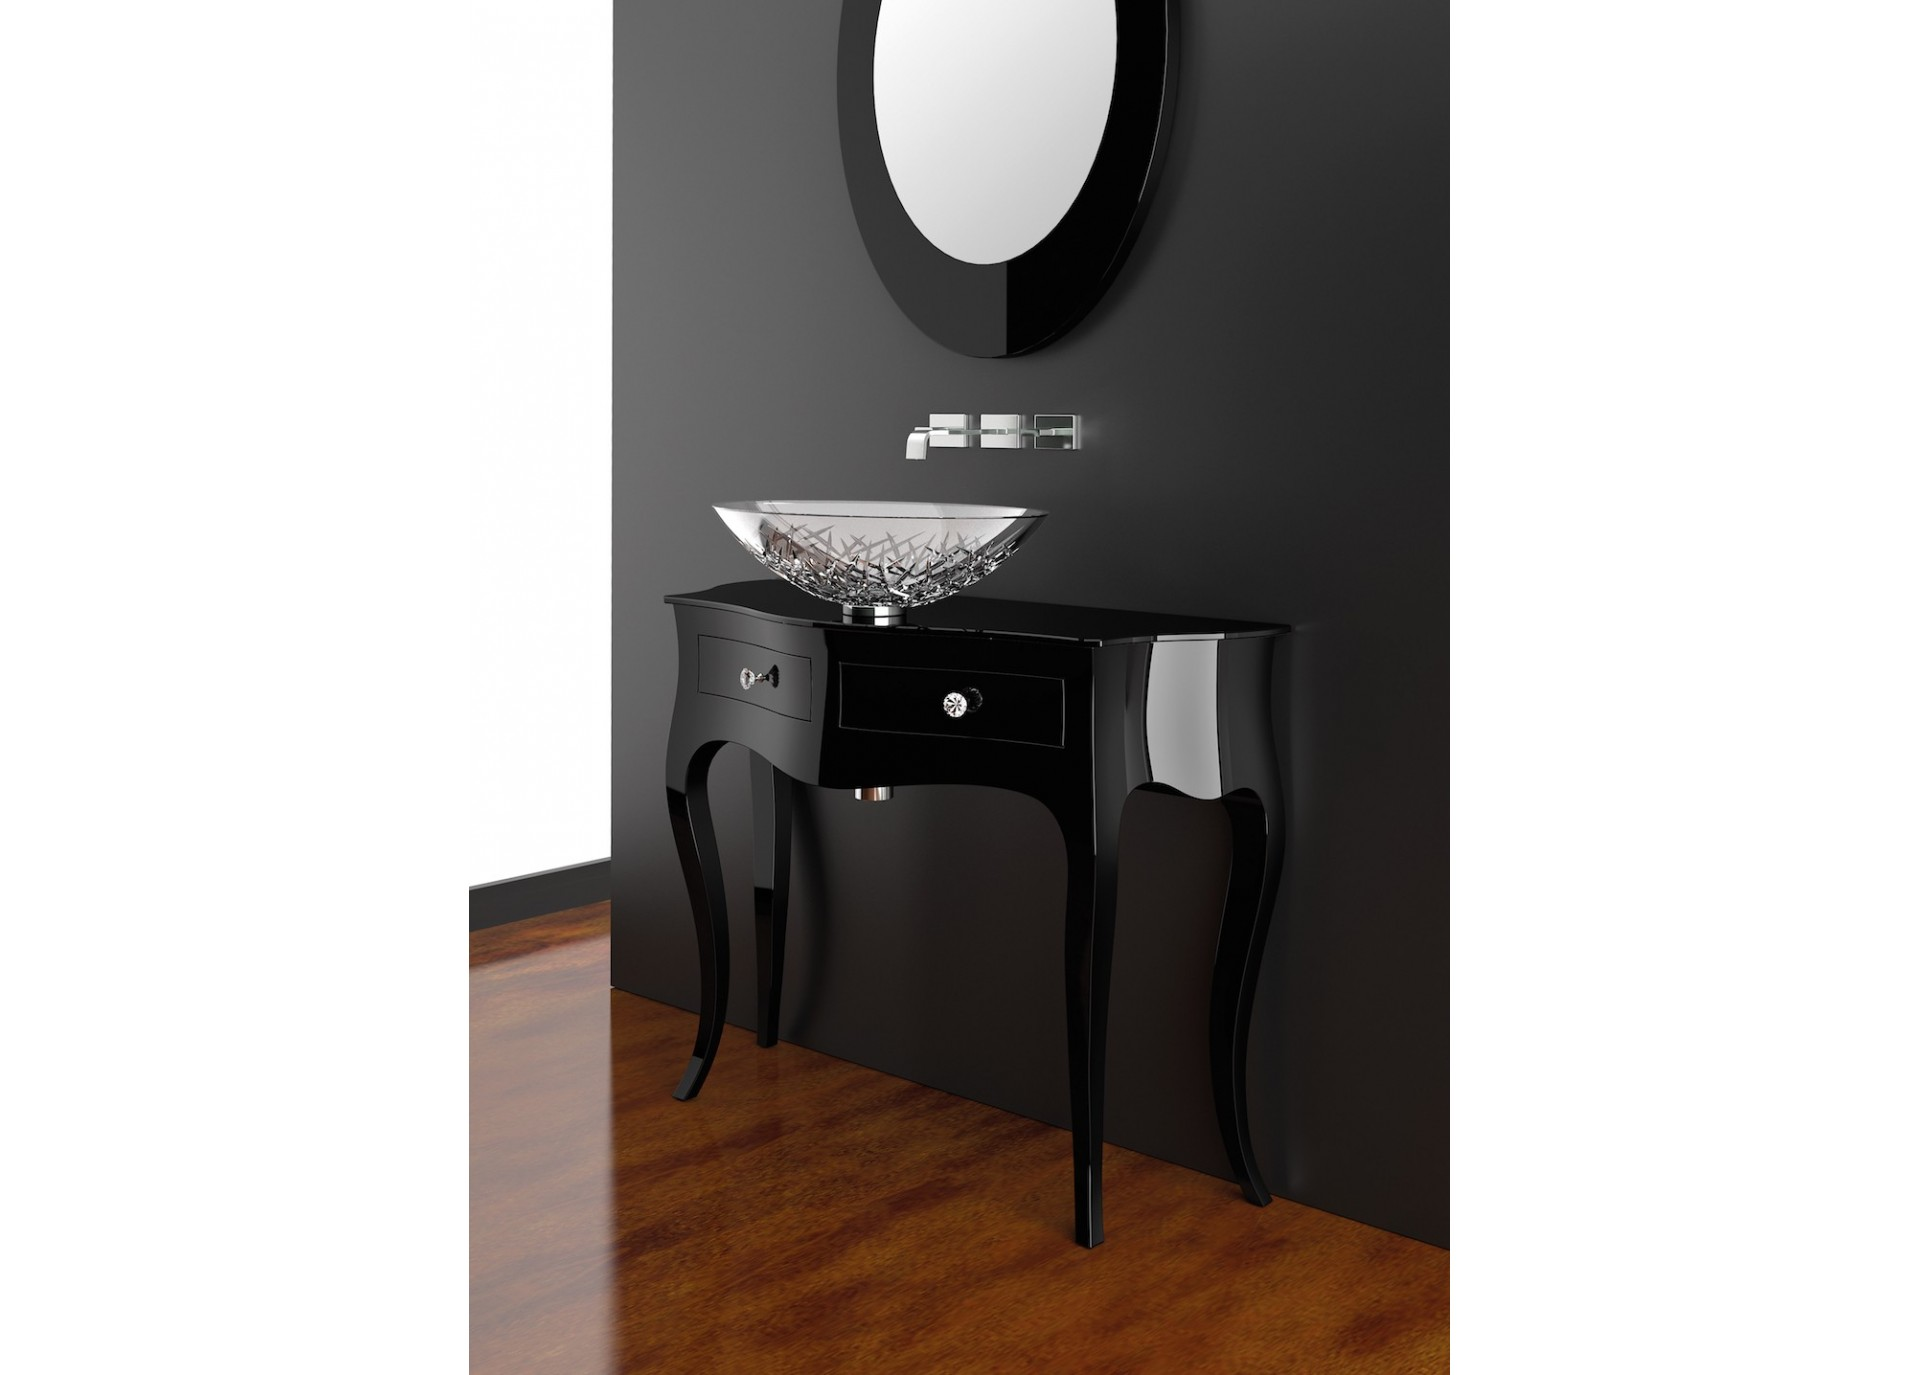 mobilier salle de bain haut de gamme canto by glass design. Black Bedroom Furniture Sets. Home Design Ideas